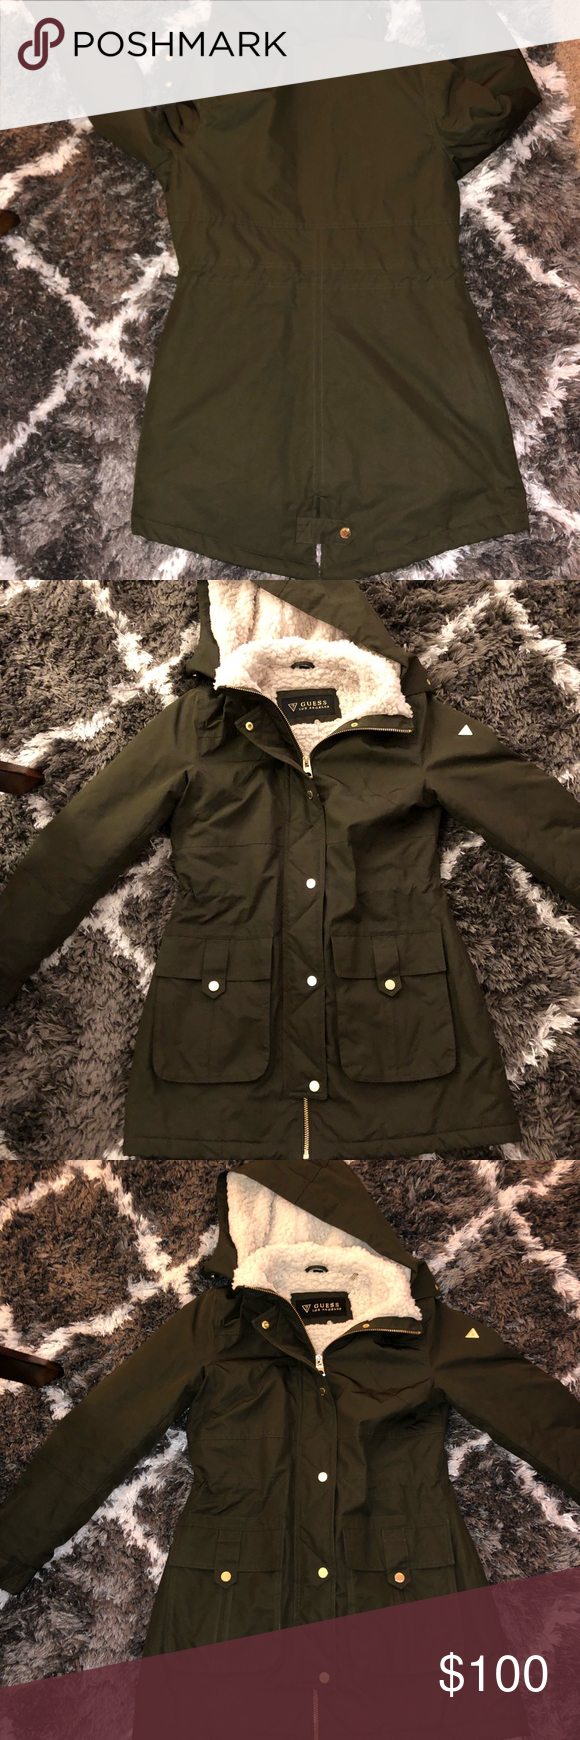 sold worldwide terrific value favorable price Guess Los Angeles Winter Coat Olive green Guess Los Angeles ...